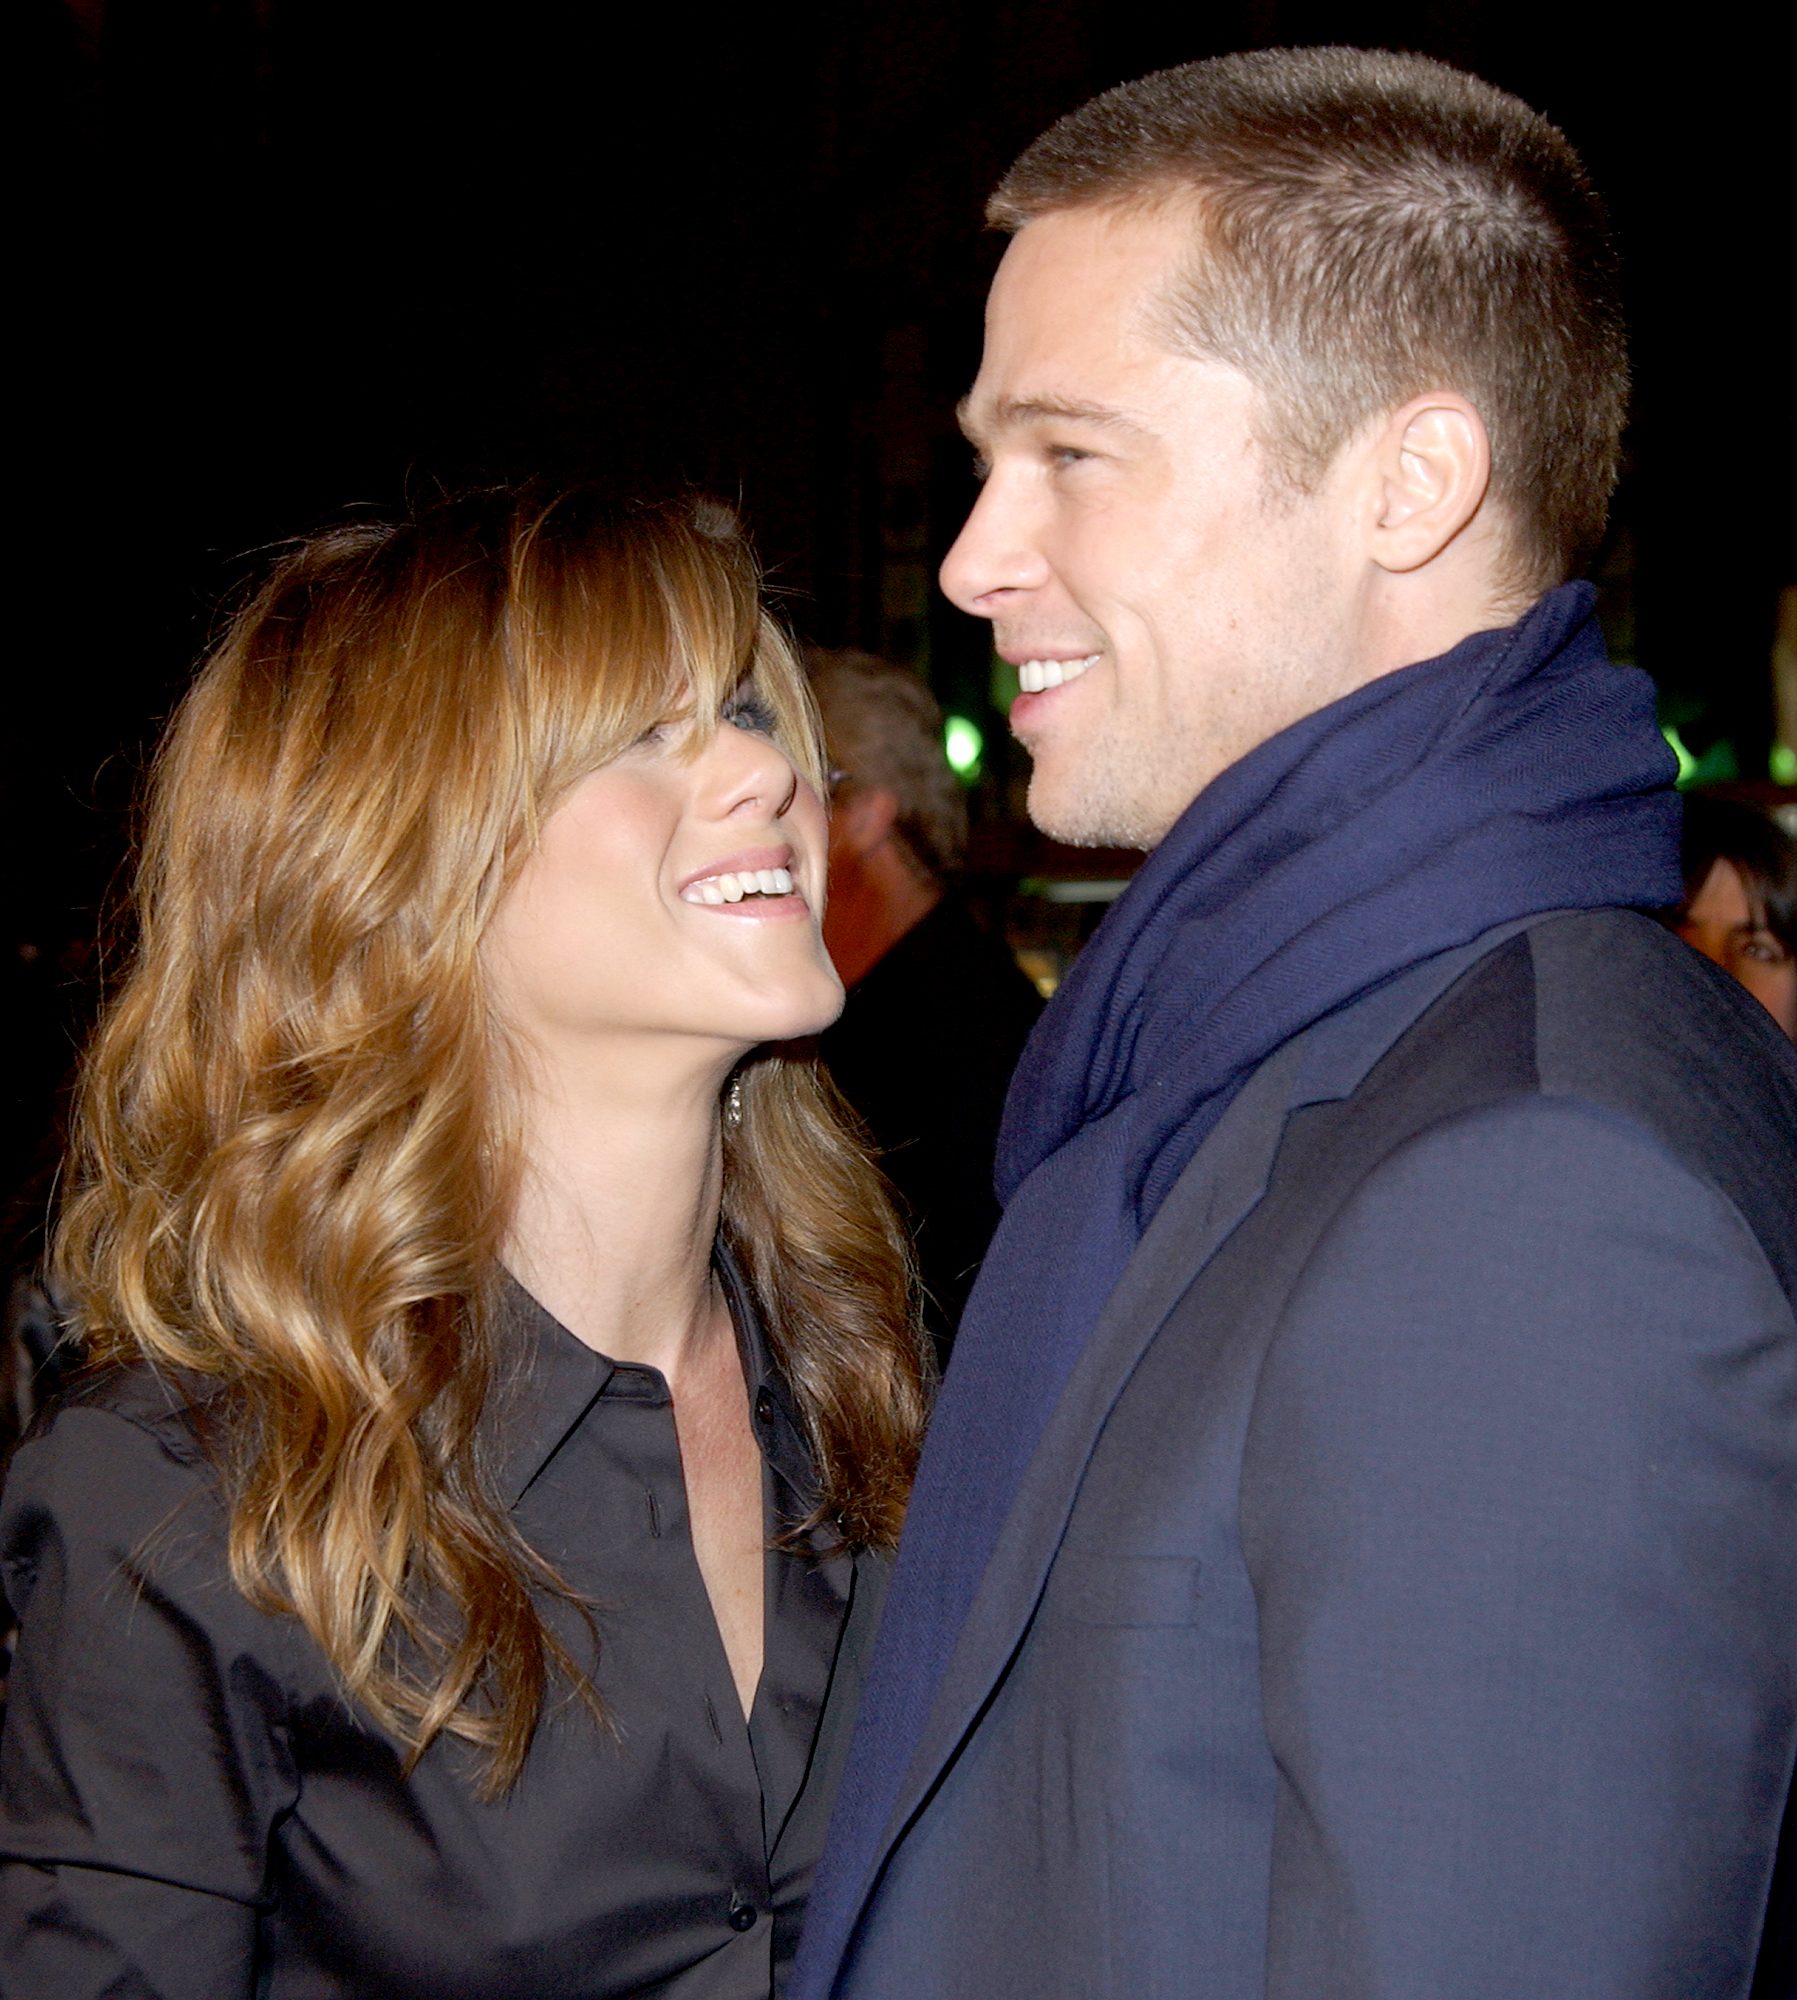 """jennifer-aniston-brad-pitt-divorce-relationship - The Friends alum talked of starting a family during a February 2004 interview with The Guardian . """"It's time. It's time. You know, I think you can work with a baby, I think you can work pregnant, I think you can do all of it,"""" Aniston said at the time."""